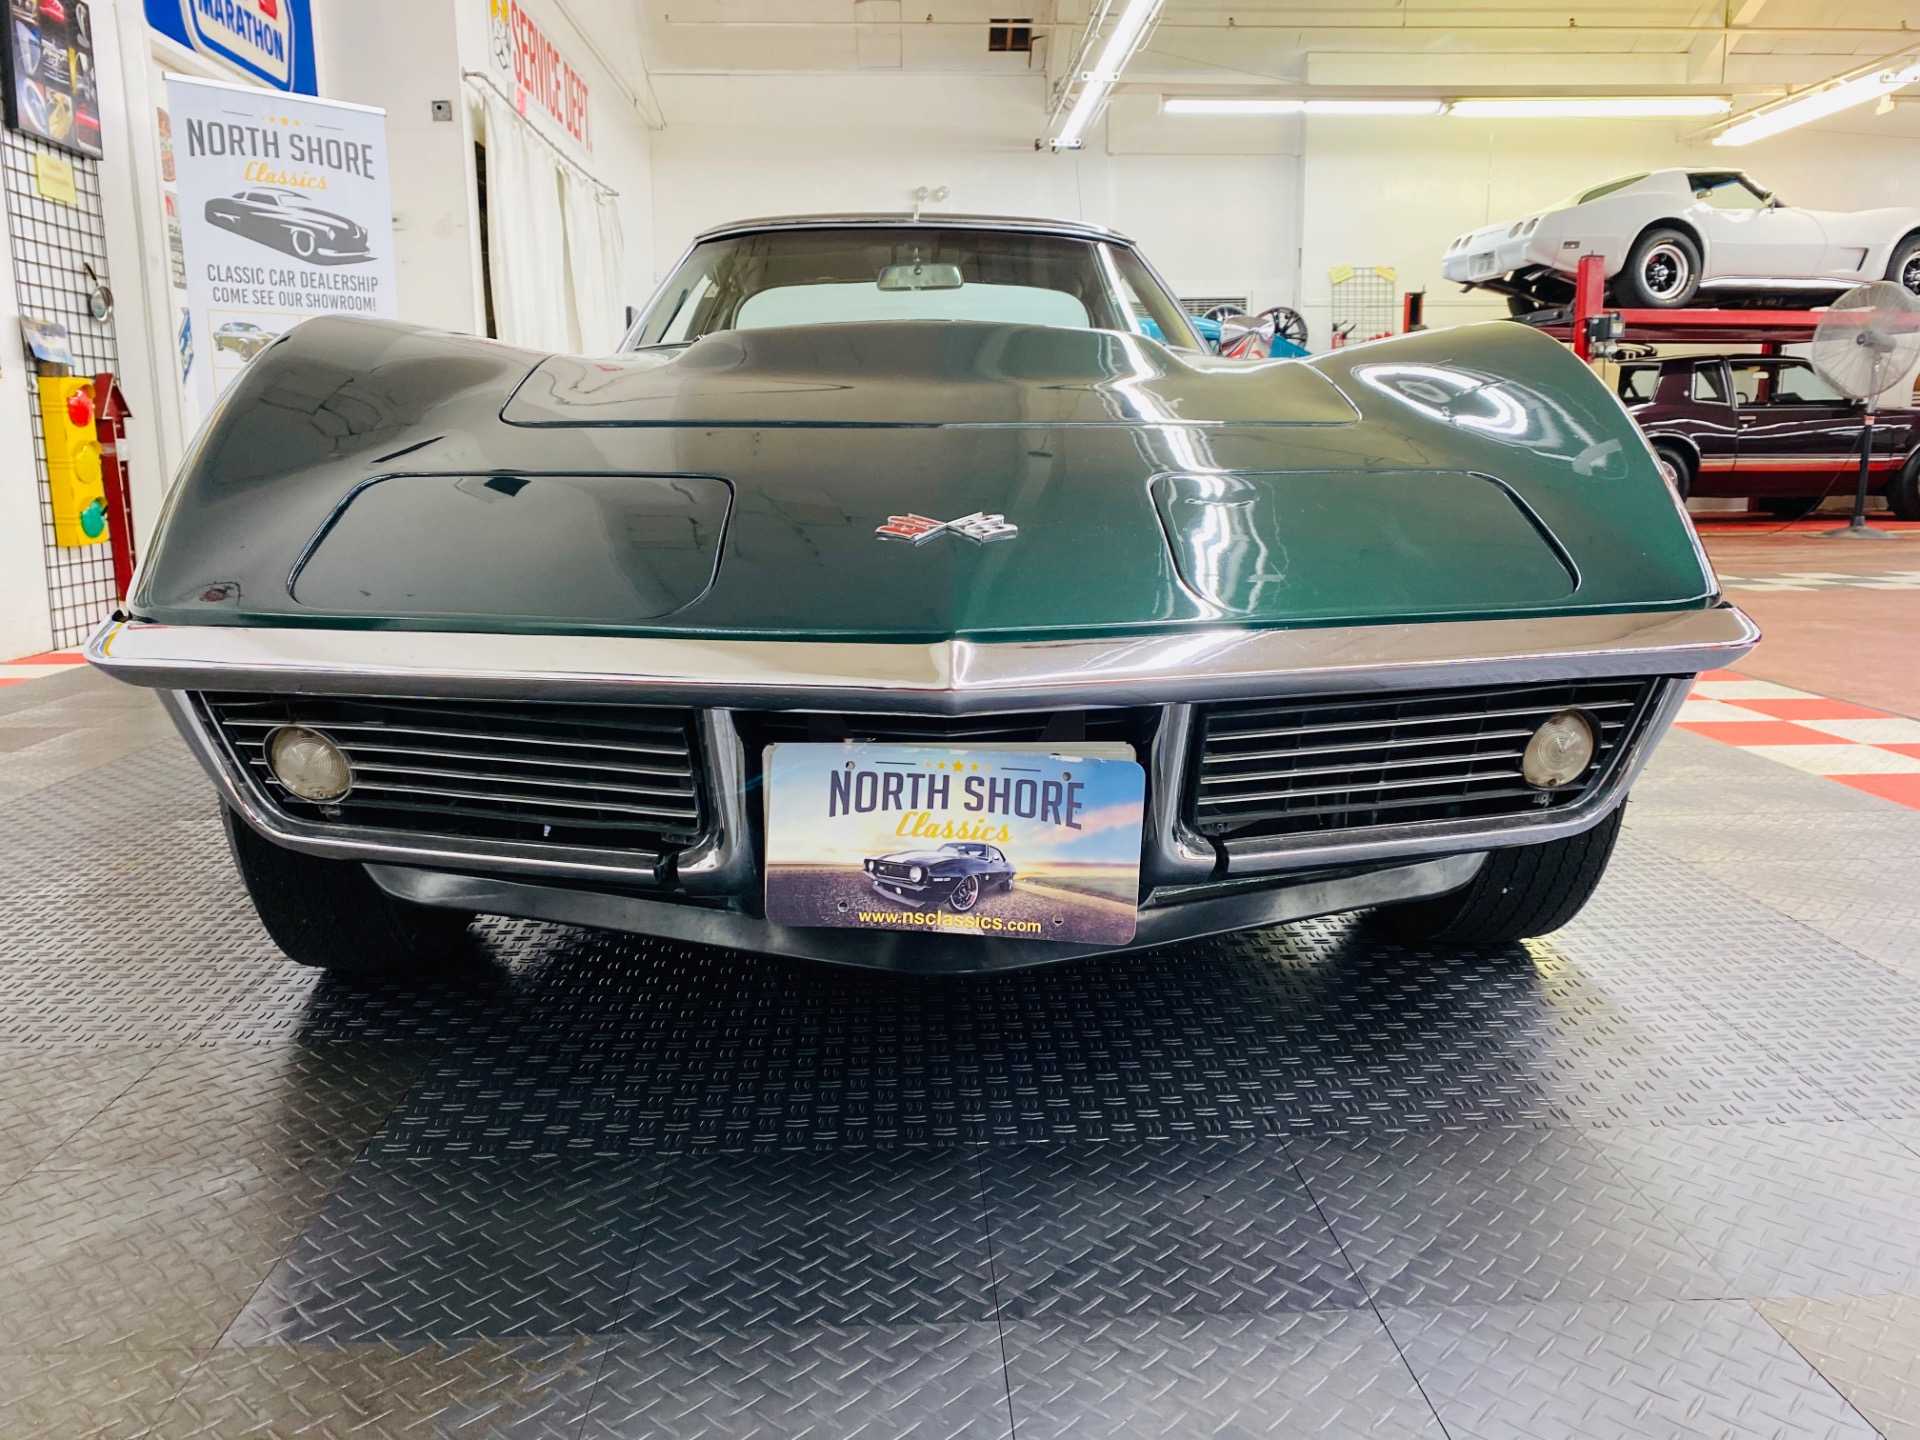 Used 1968 Chevrolet Corvette - 390 HP 427 V8 - NUMBERS MATCHING - 36,000 ORIGINAL MILES - SEE VIDEO | Mundelein, IL